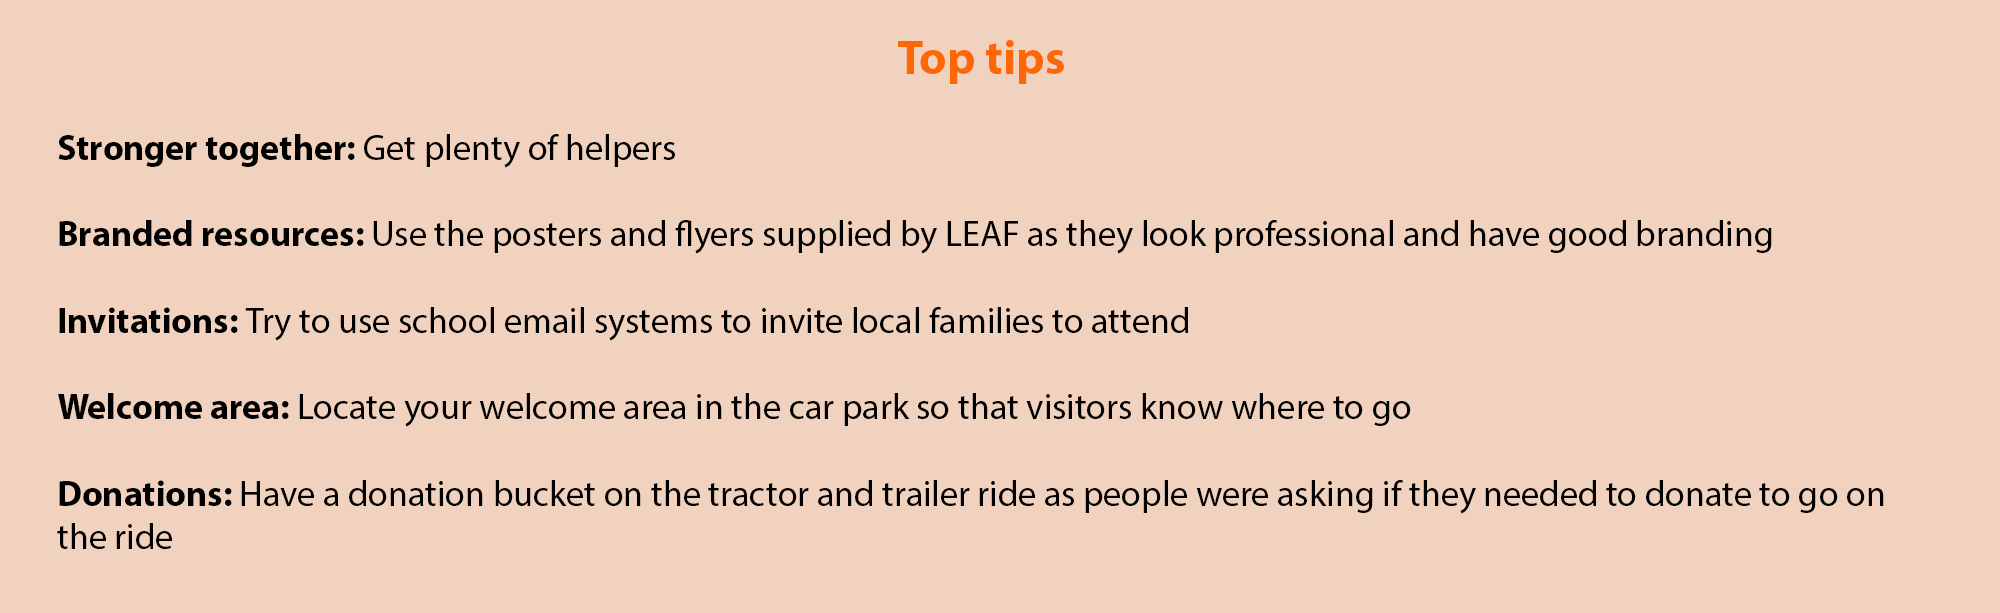 OFS_CASE_STUDY_TOP_TIPS_STREET.png#asset:4559